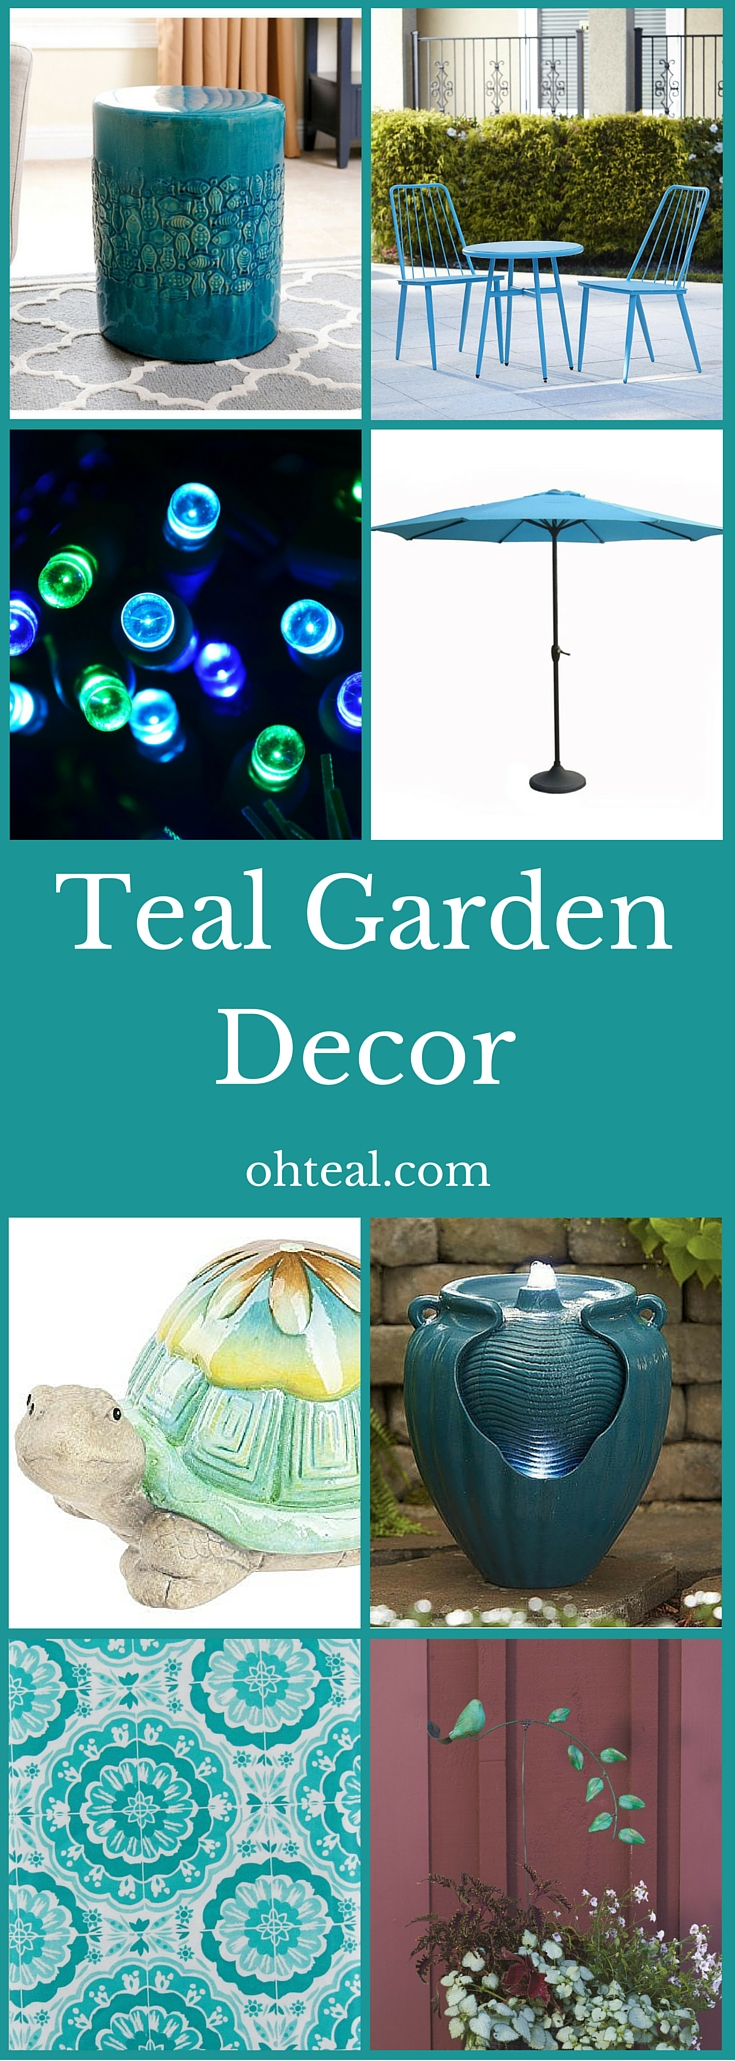 Teal Garden Decor - Oh Teal!